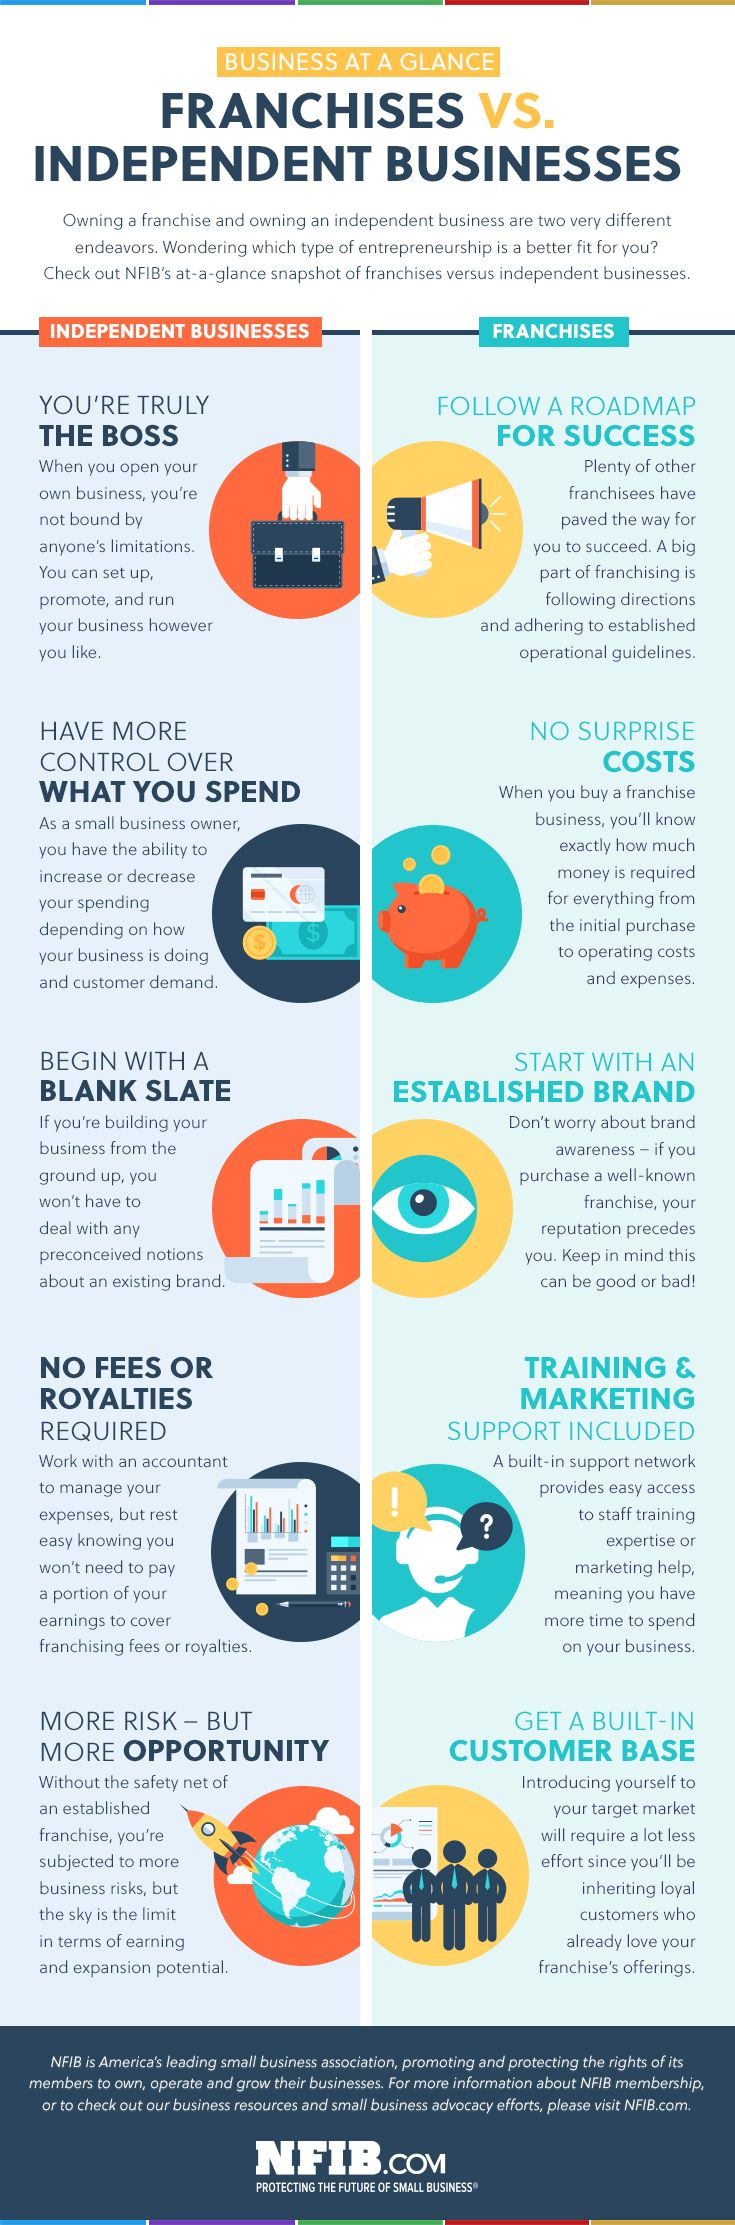 Infographic: Franchises vs. Independent Businesses   NFIB